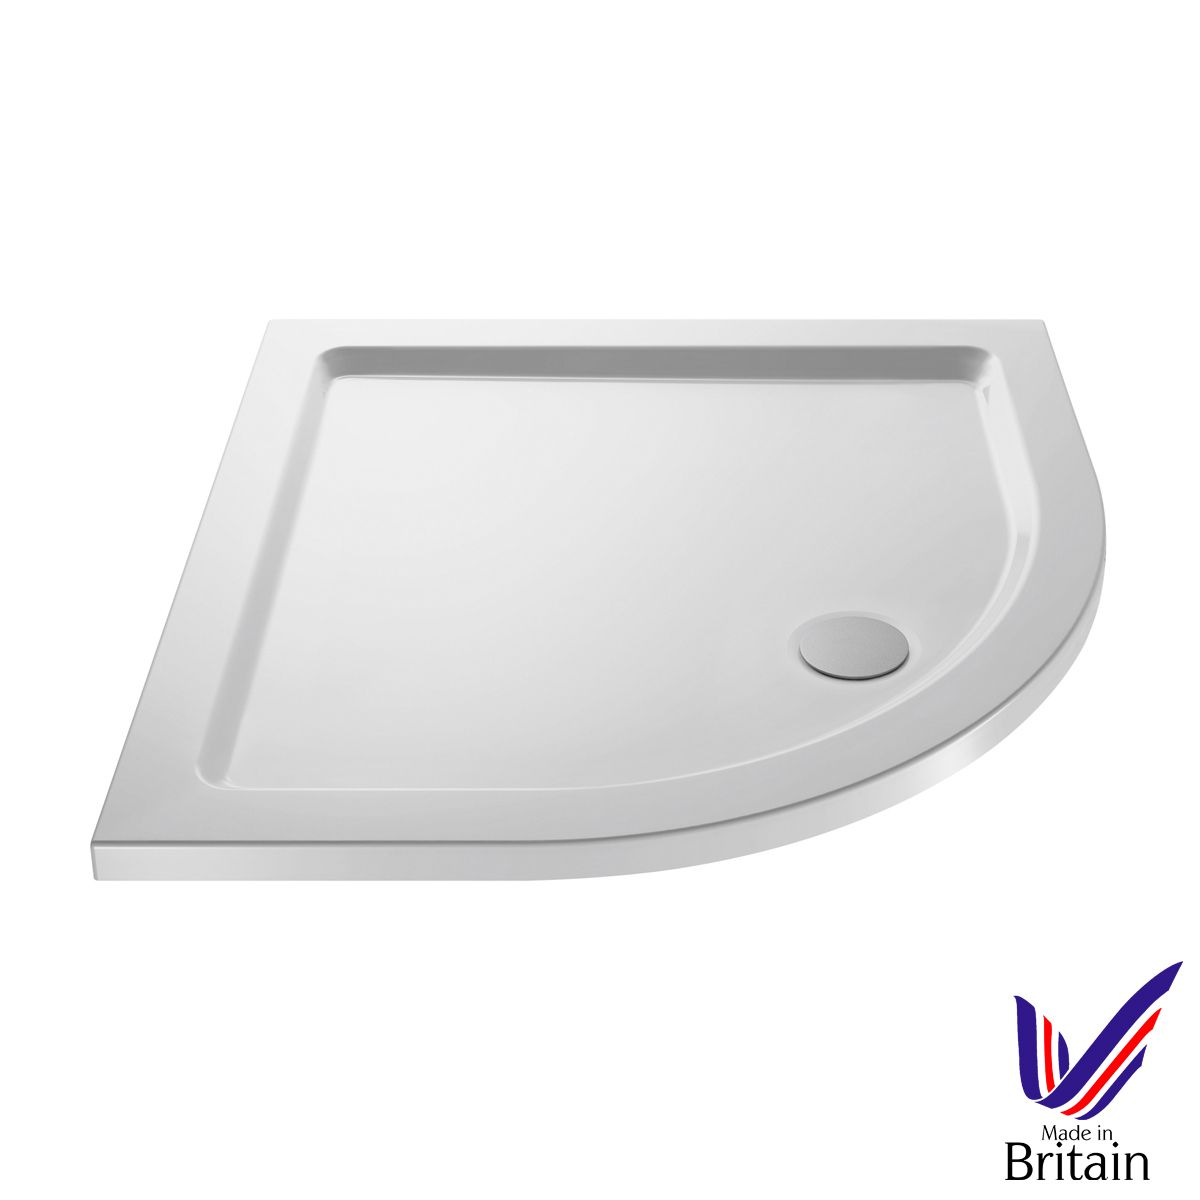 700 x 700 Shower Tray Quadrant Low Profile by Pearlstone